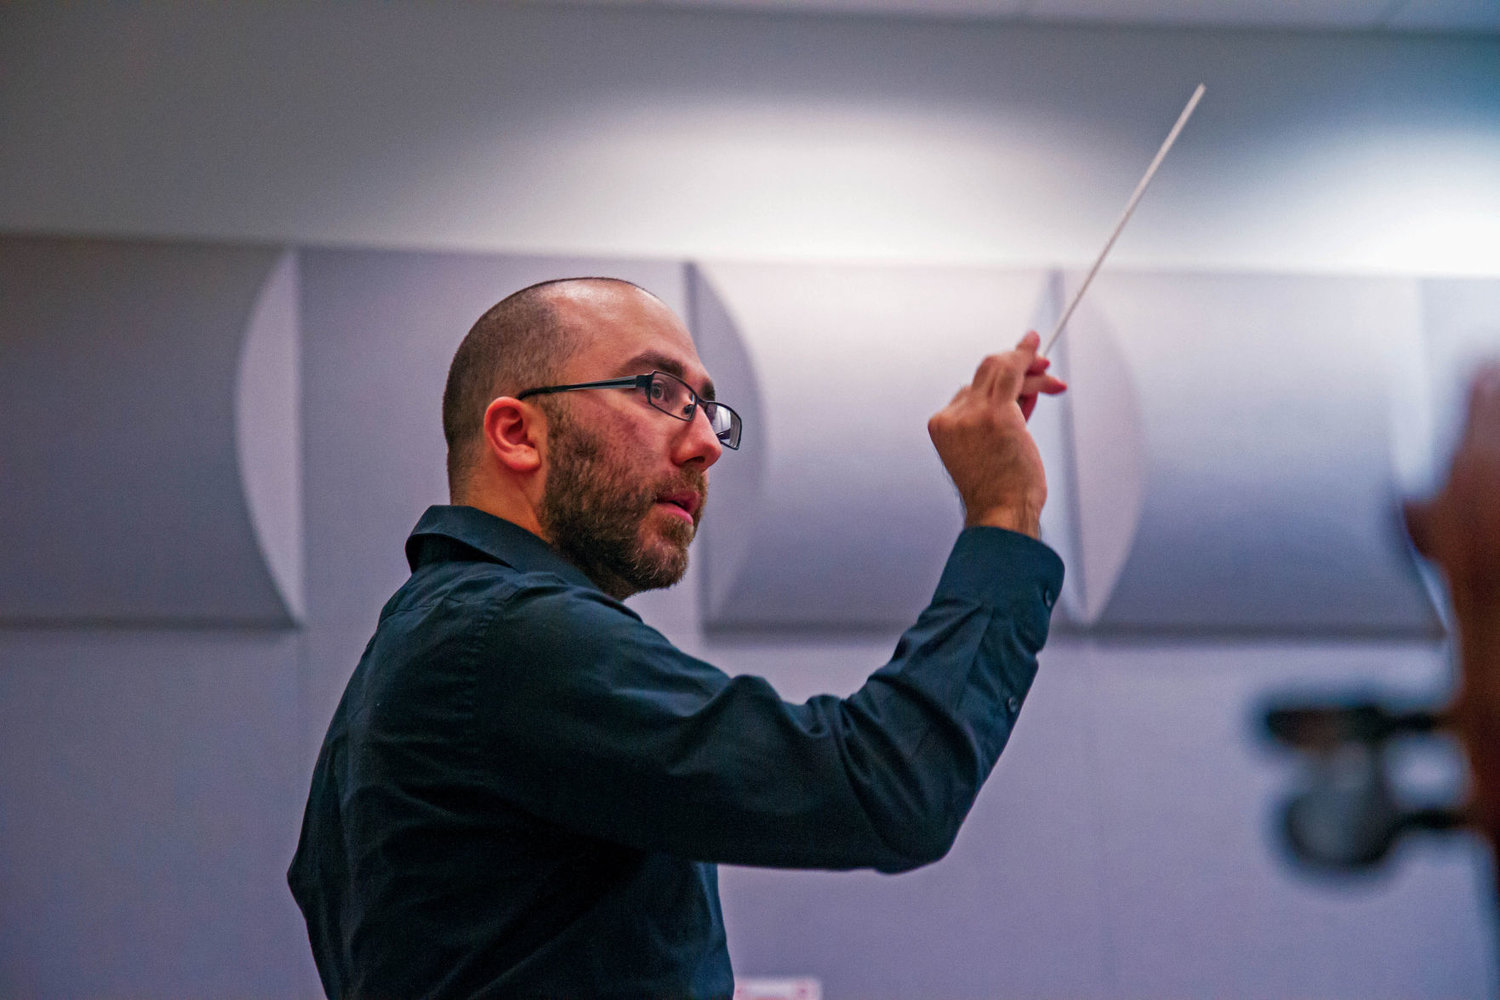 Tigran Arakelyan conducts the Port Townsend Community Orchestra during rehearsal Oct. 17. Photo by Katie Kowalski